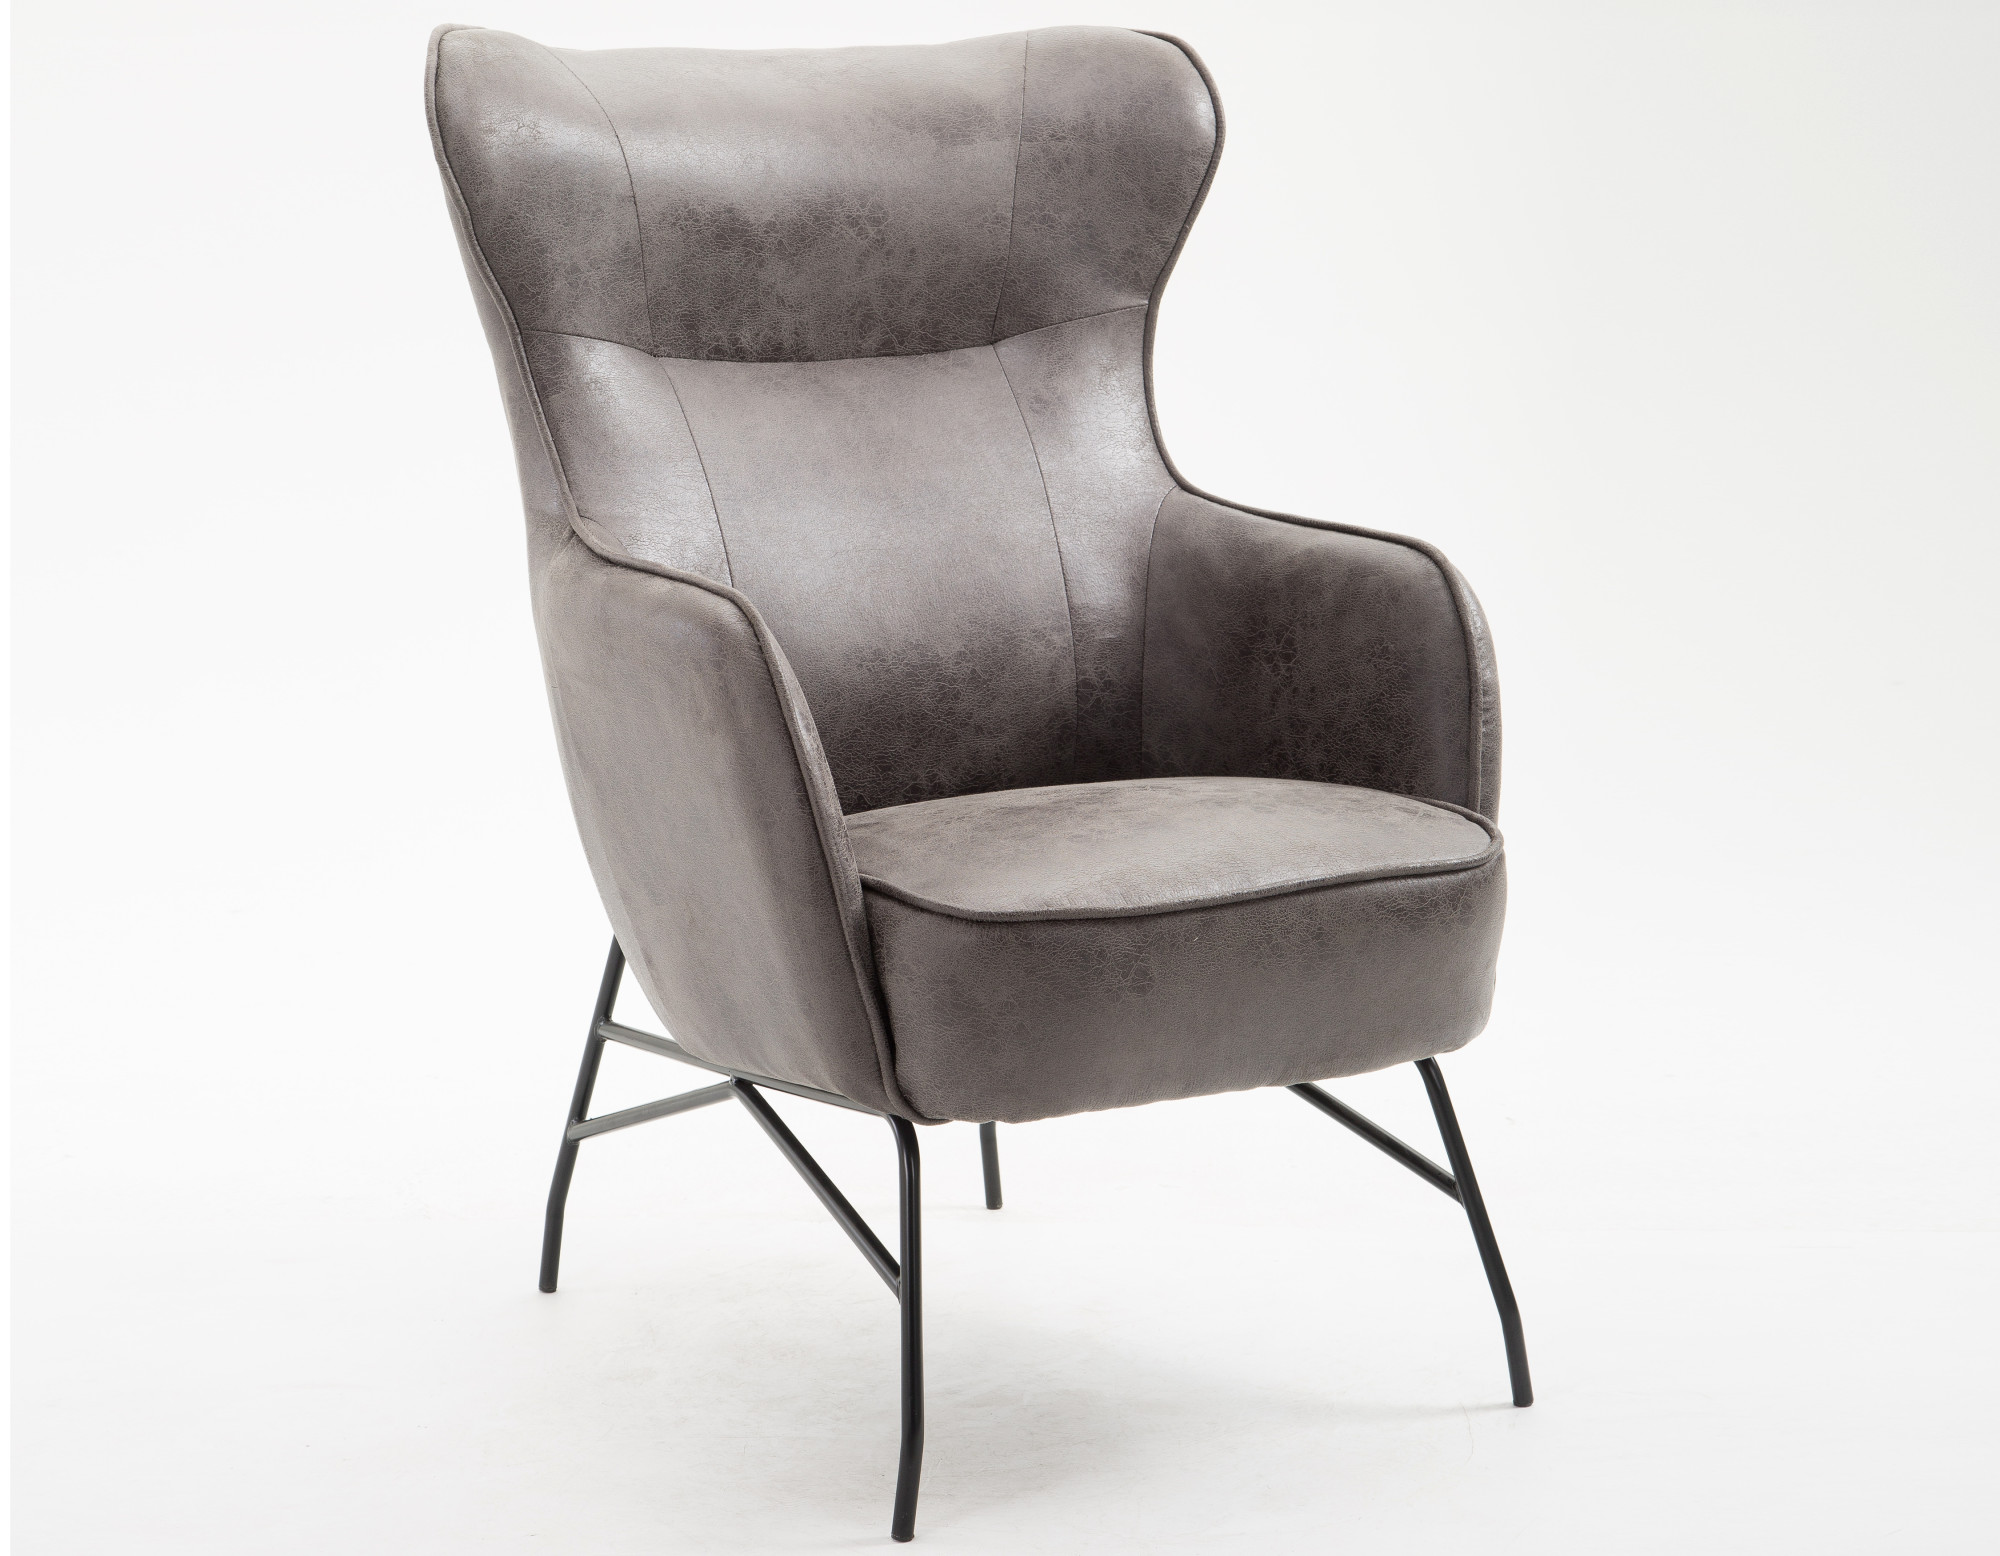 Emerald Home Franky Badlands Saddle and Black Accent Chair with Faux Leather Upholstery And Metal Base - Walmart.com & Emerald Home Franky Badlands Saddle and Black Accent Chair with Faux ...